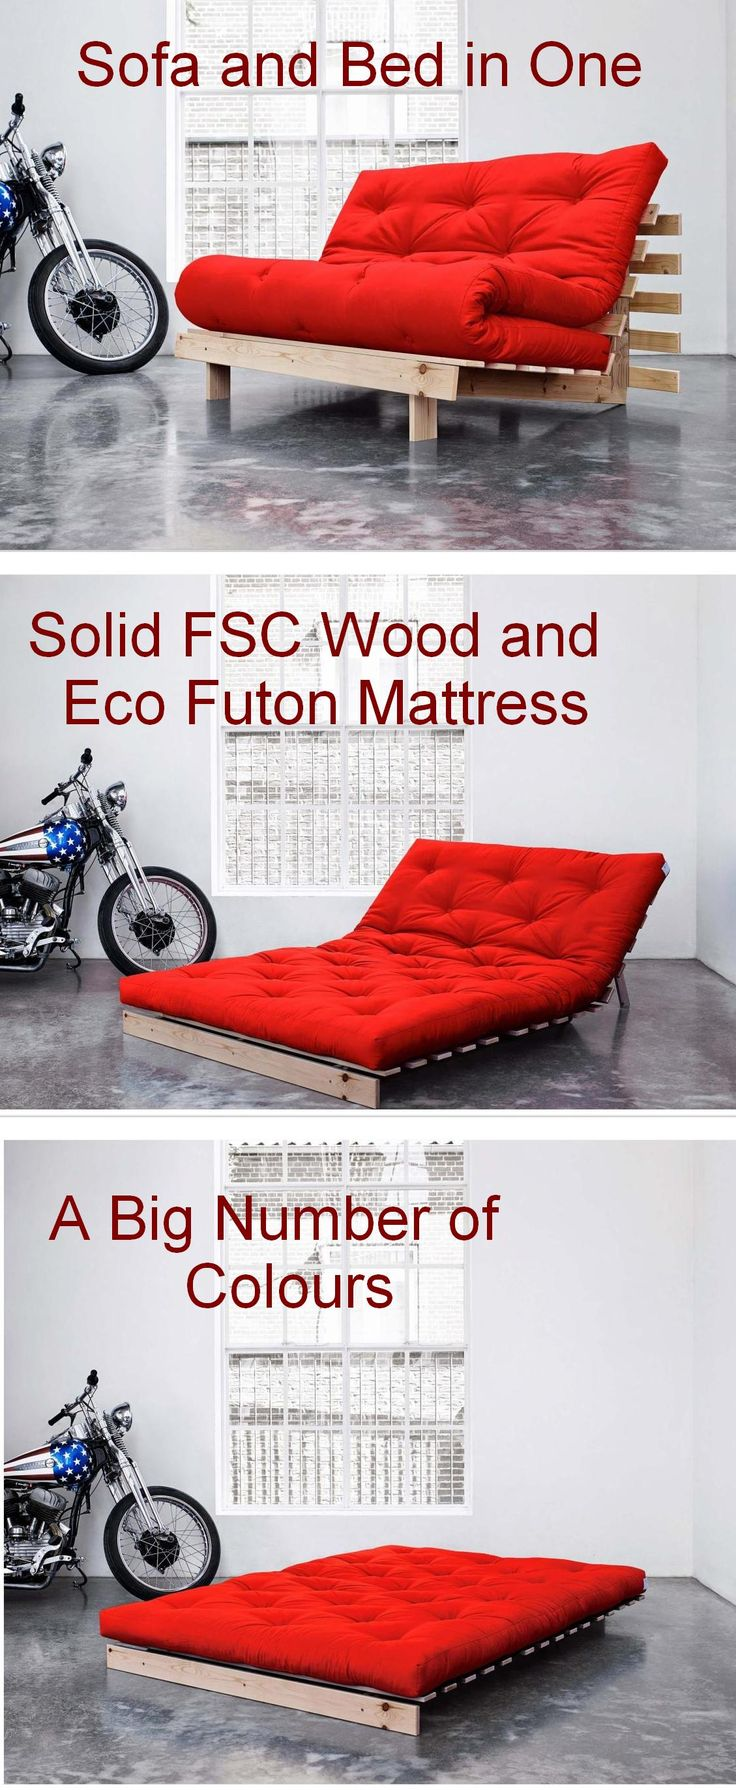 Buy on Stylehouse.no! Speak all Scandinavian Languages! #beds #fsc #fsc-certified #fsc certified #fsc certified wood #fsc-certified wood #sofa-bed #sofa bed #sofa bed mattress #futon sofa bed #futon sofa-bed #sofa-bed mattress #pull-out sofa bed #pull out sofa bed #queen sofa bed #twin sofa bed #bed/sofa #bed sofa #best sofa-bed #queen-size sofa bed #futon